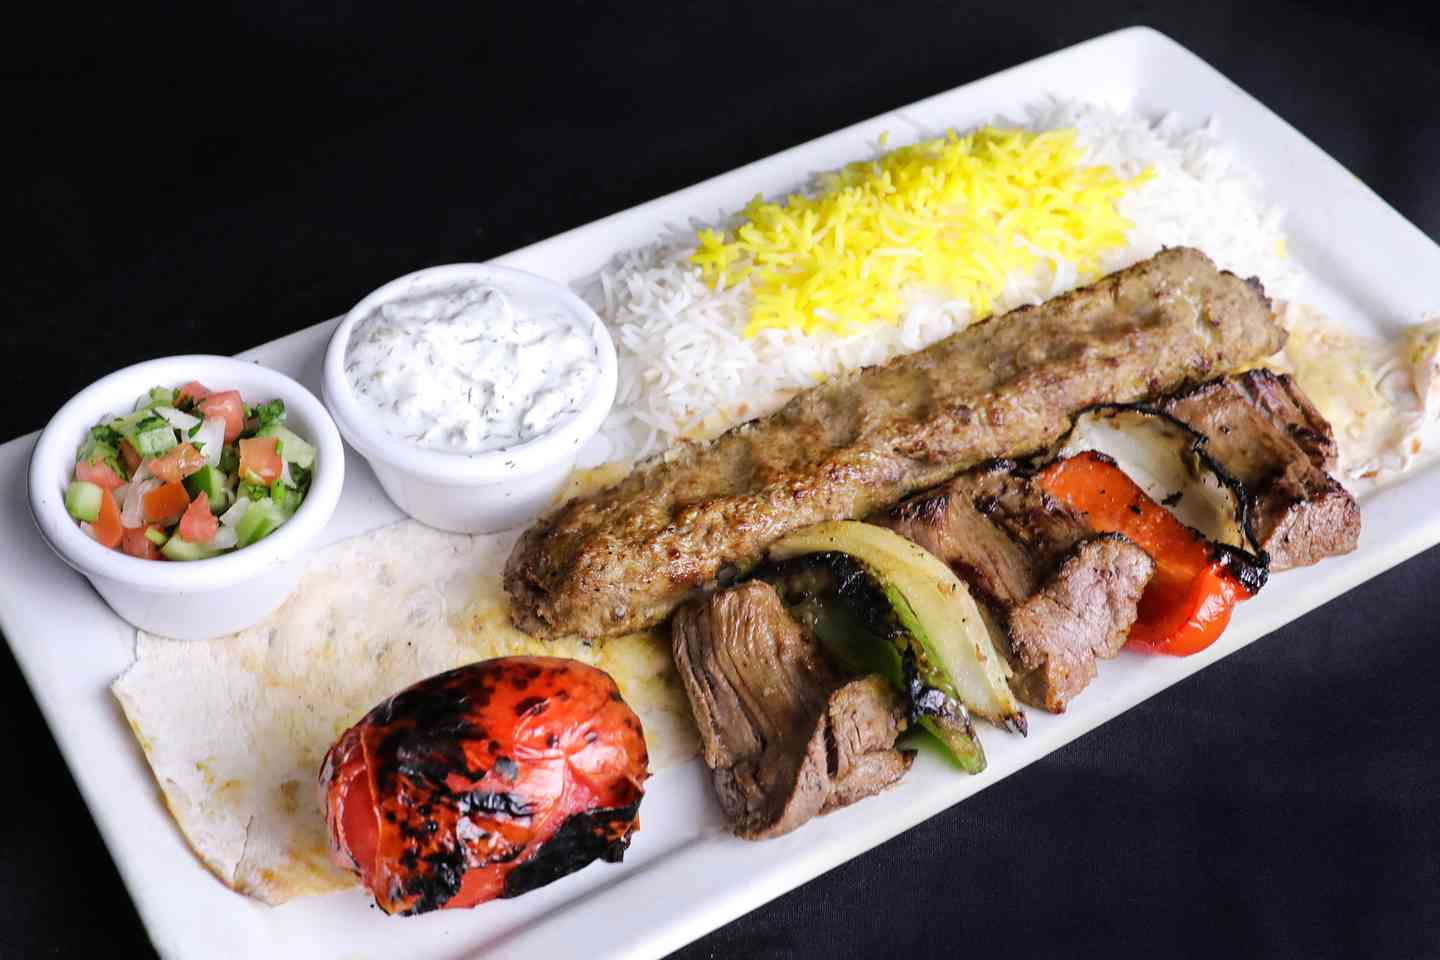 1 Skewer of Koobideh + 1/2 Filet Shish